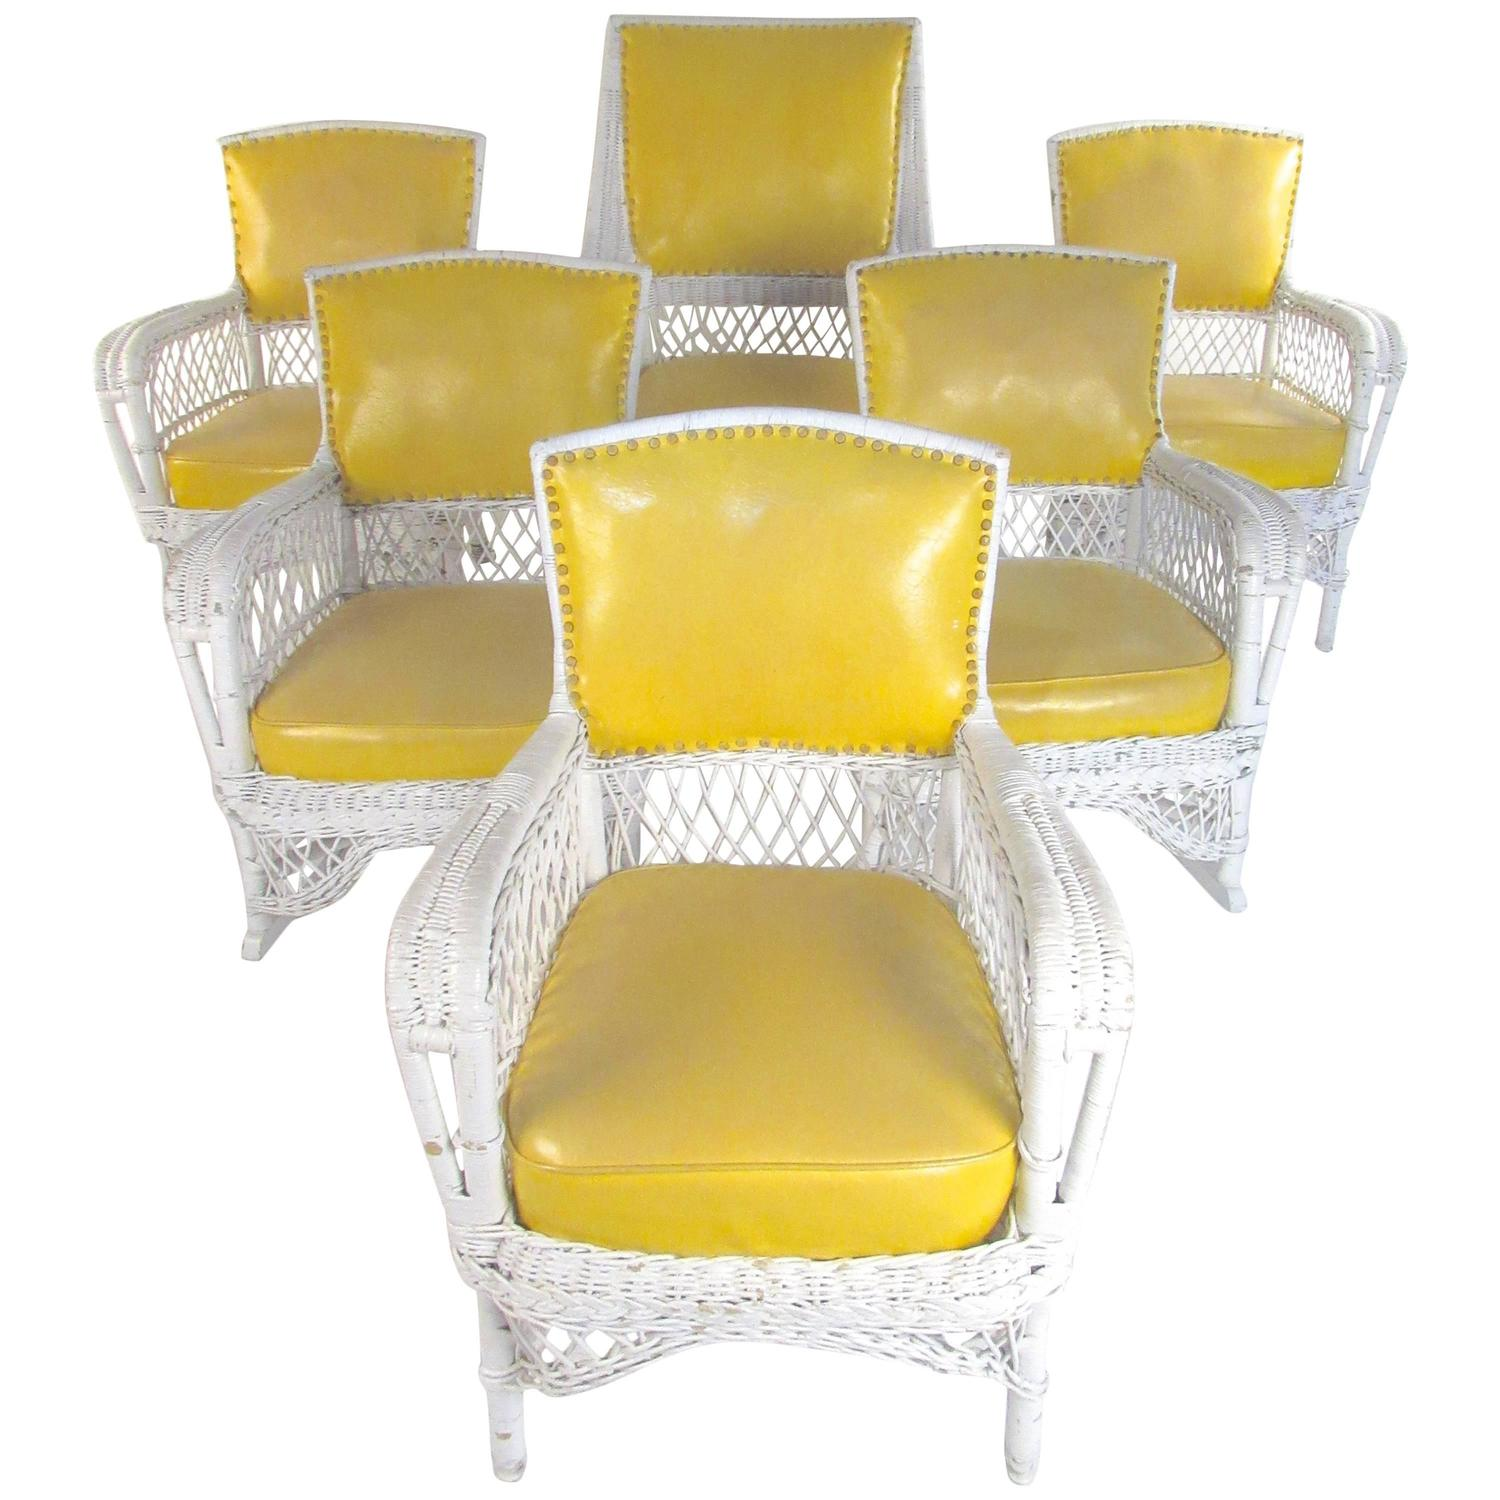 Set Of Six Vintage Wicker And Vinyl Chairs, Mid-Century